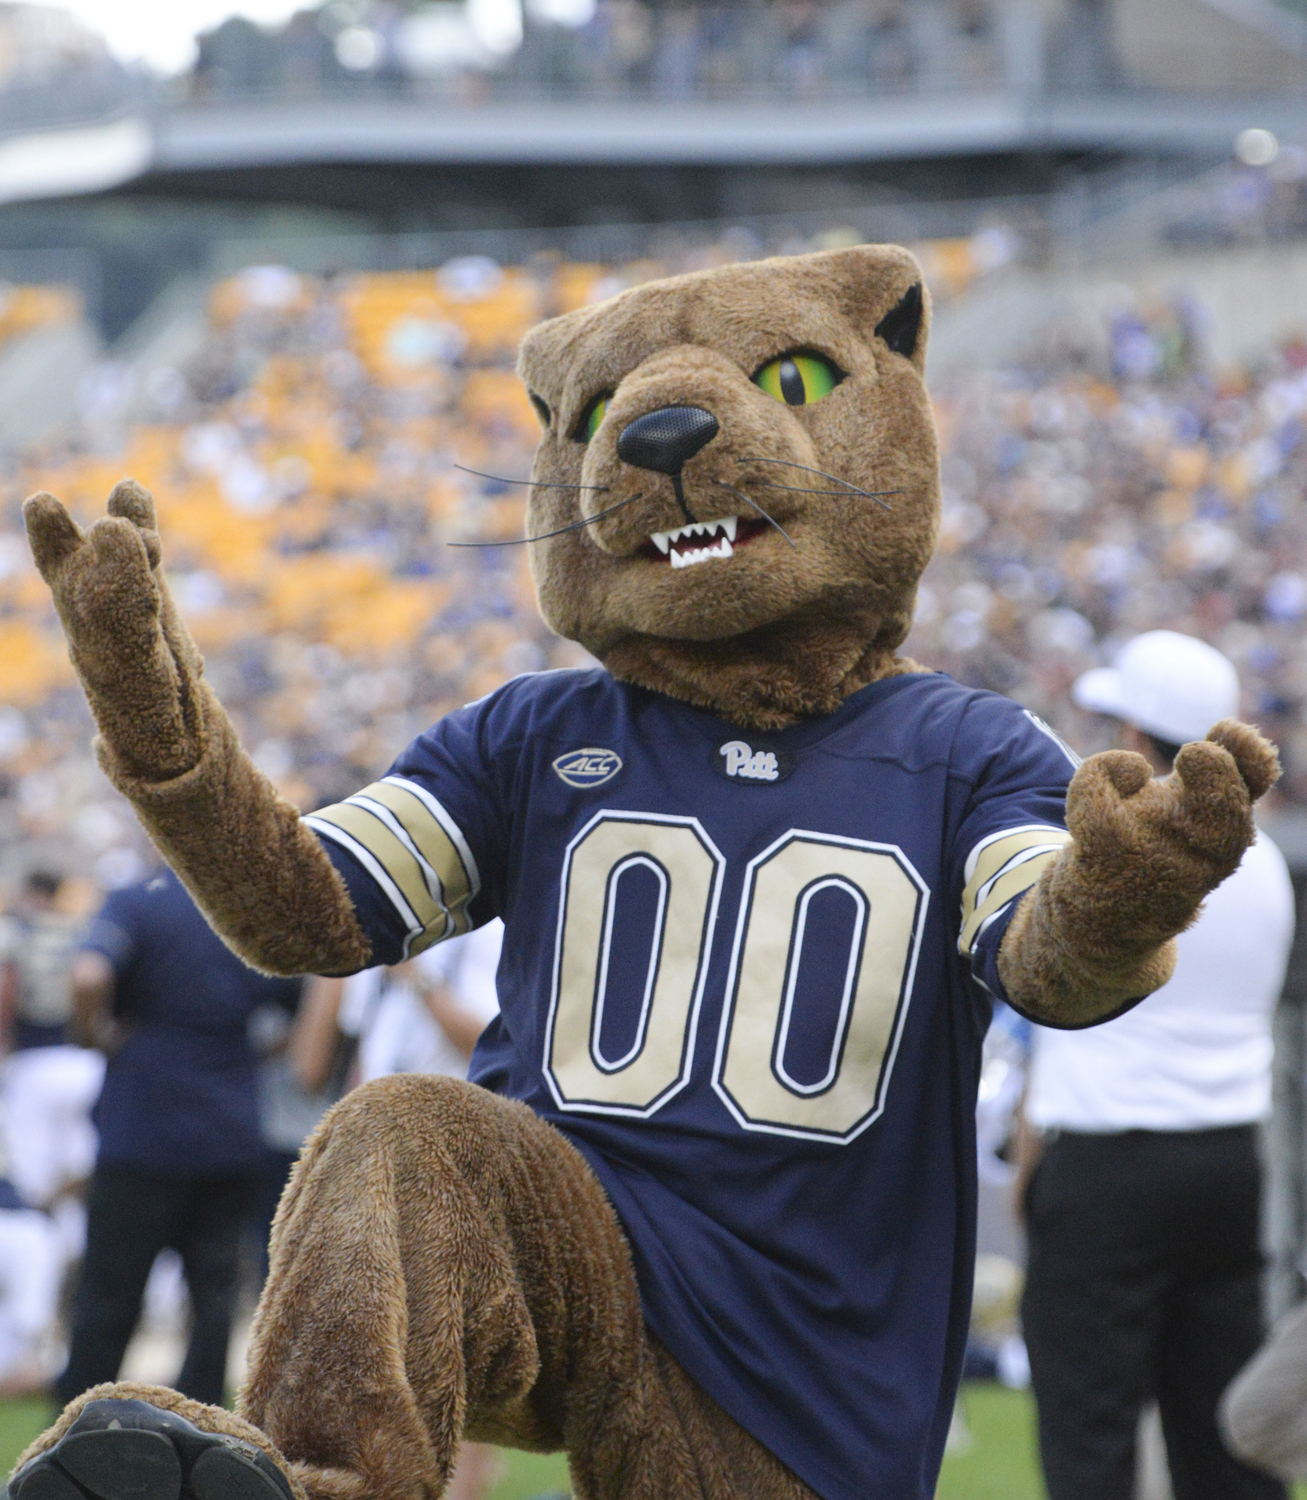 Panthers' mascot ROC dances on Heinz Field during Pitt's game against Georgia Tech Sept. 15.